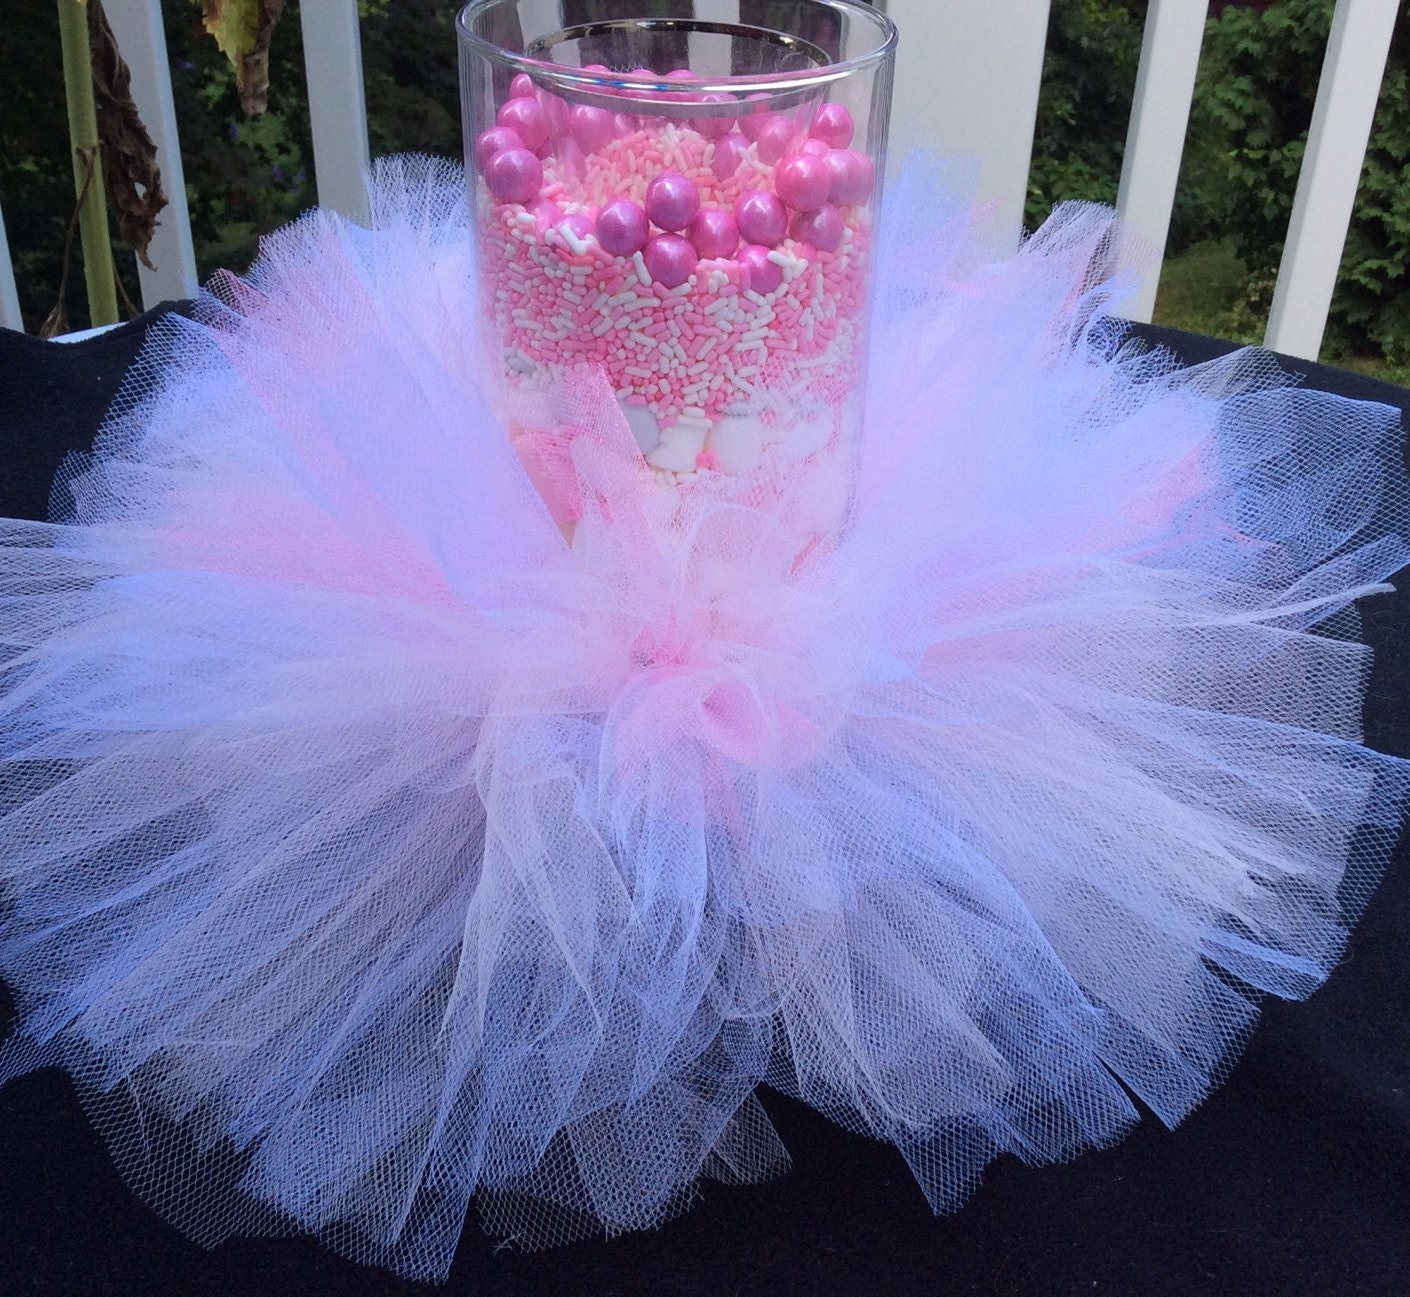 Tulle Tutu Vase Or Candle Accent By LillyJake On Etsy